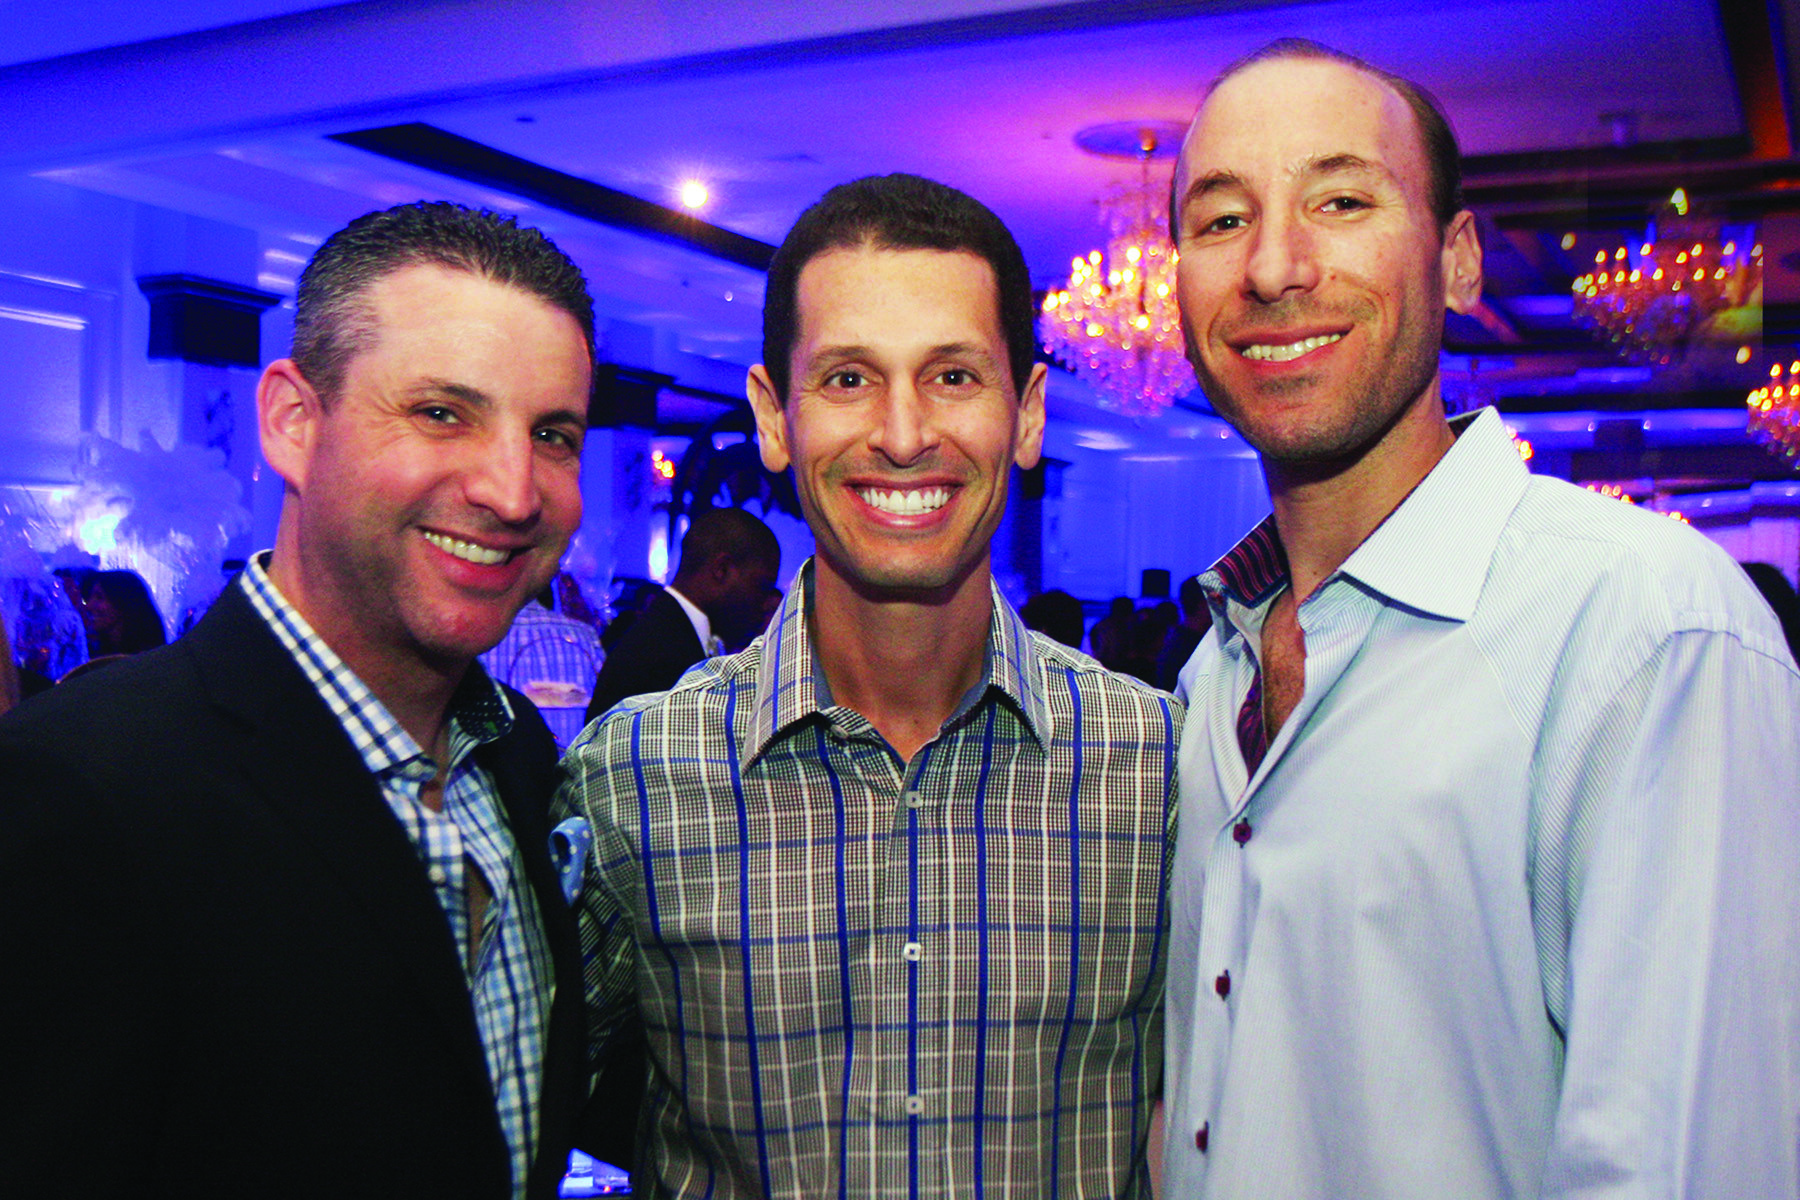 Society Scene photos - Ryan Lieber, left, Jay Vogel and Josh Friedman enjoyed the festivities at Congregation B